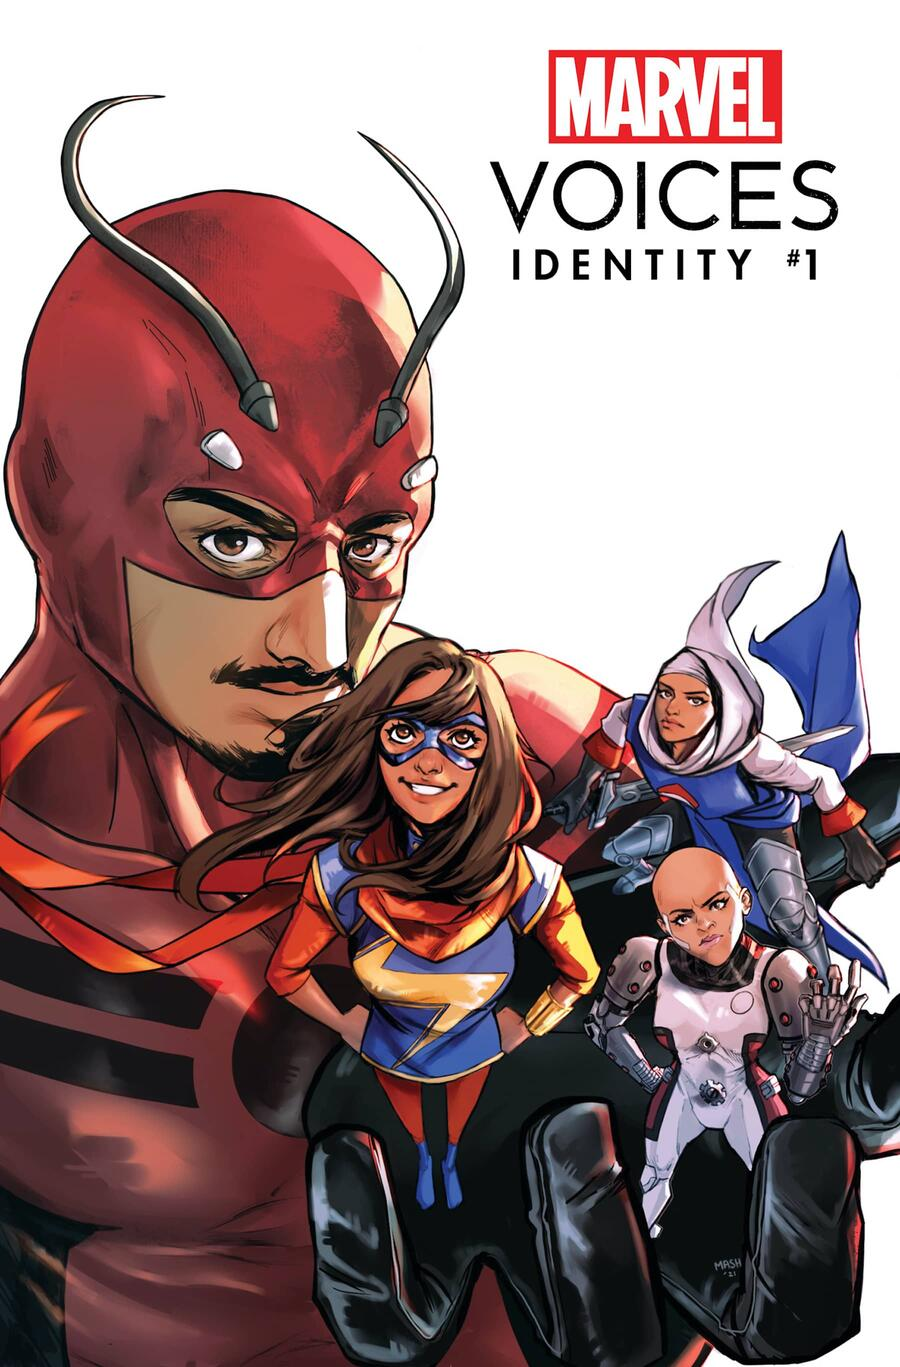 MARVEL'S VOICES: IDENTITY #1 Variant Cover by MASHAL AHMED